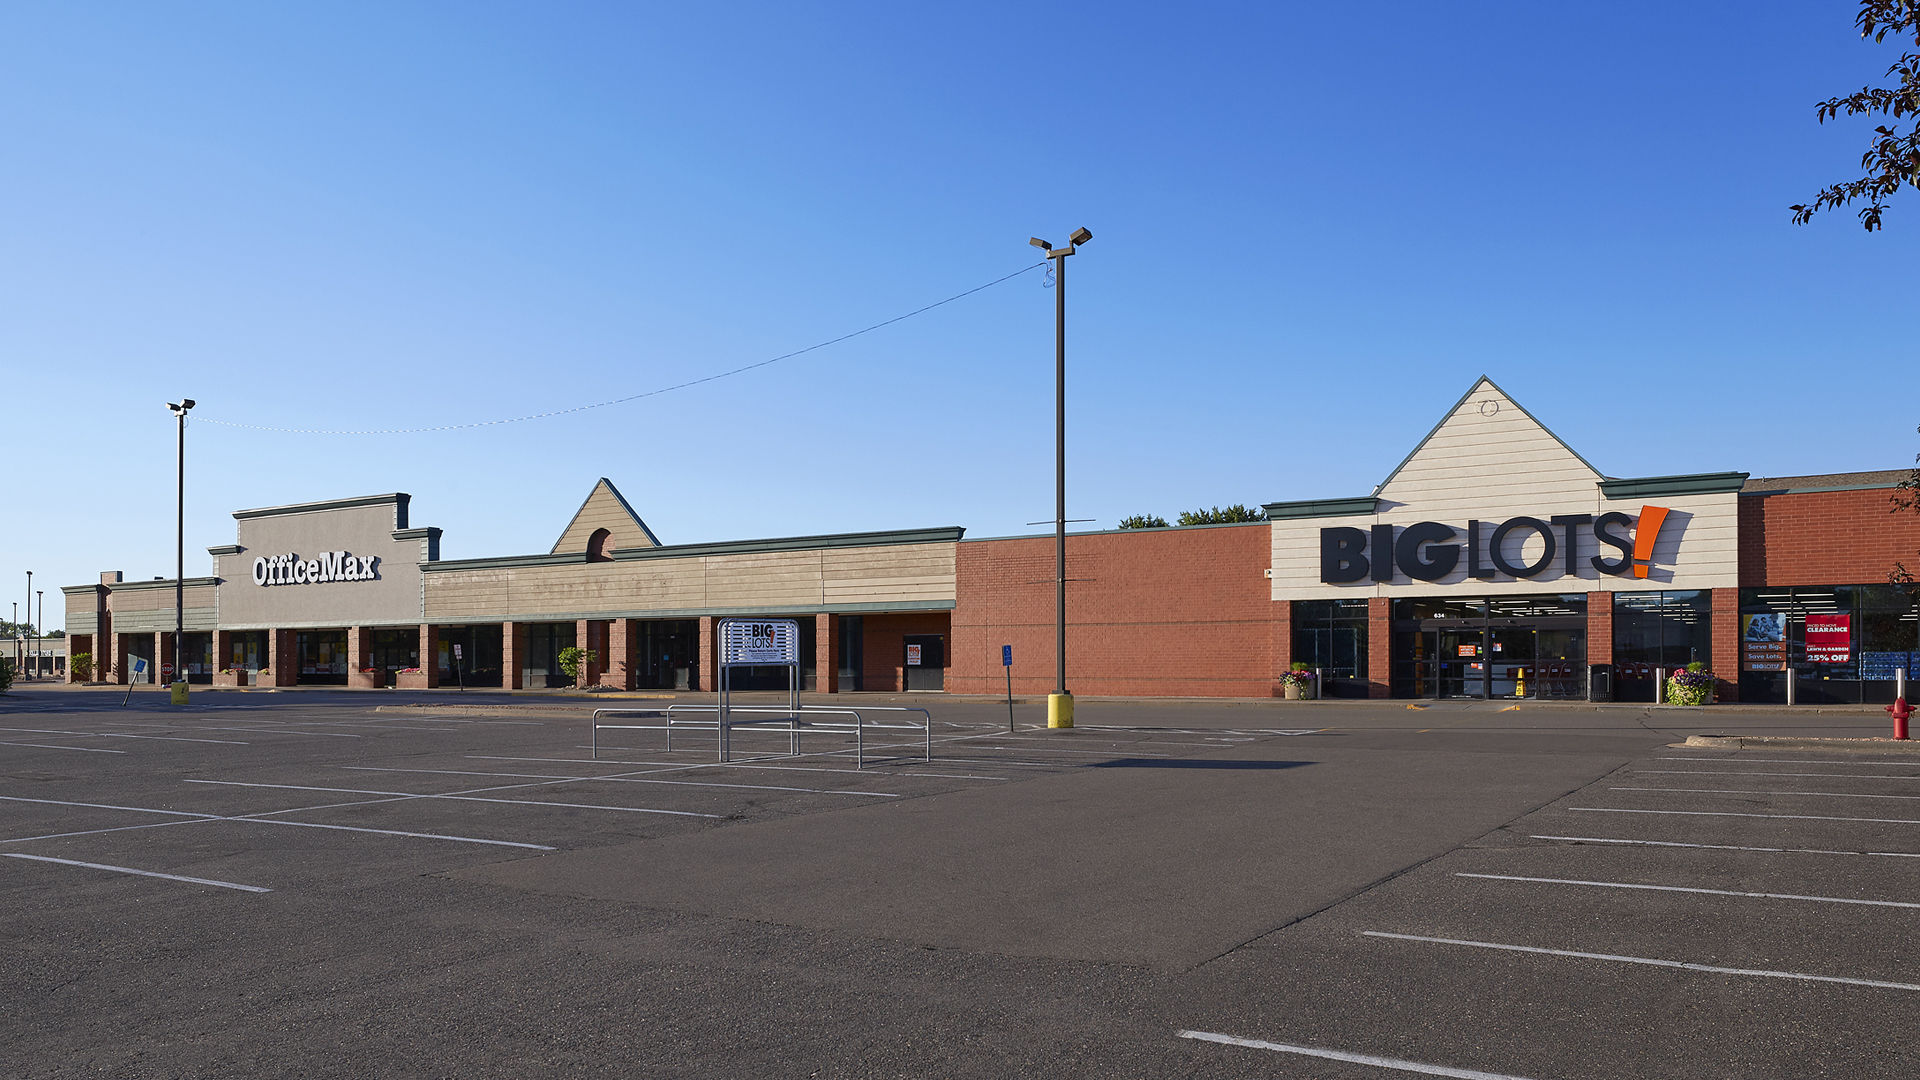 Northcourt Commons Retail Shopping Center Blaine MN exterior view featuring Office Max and Big Lots